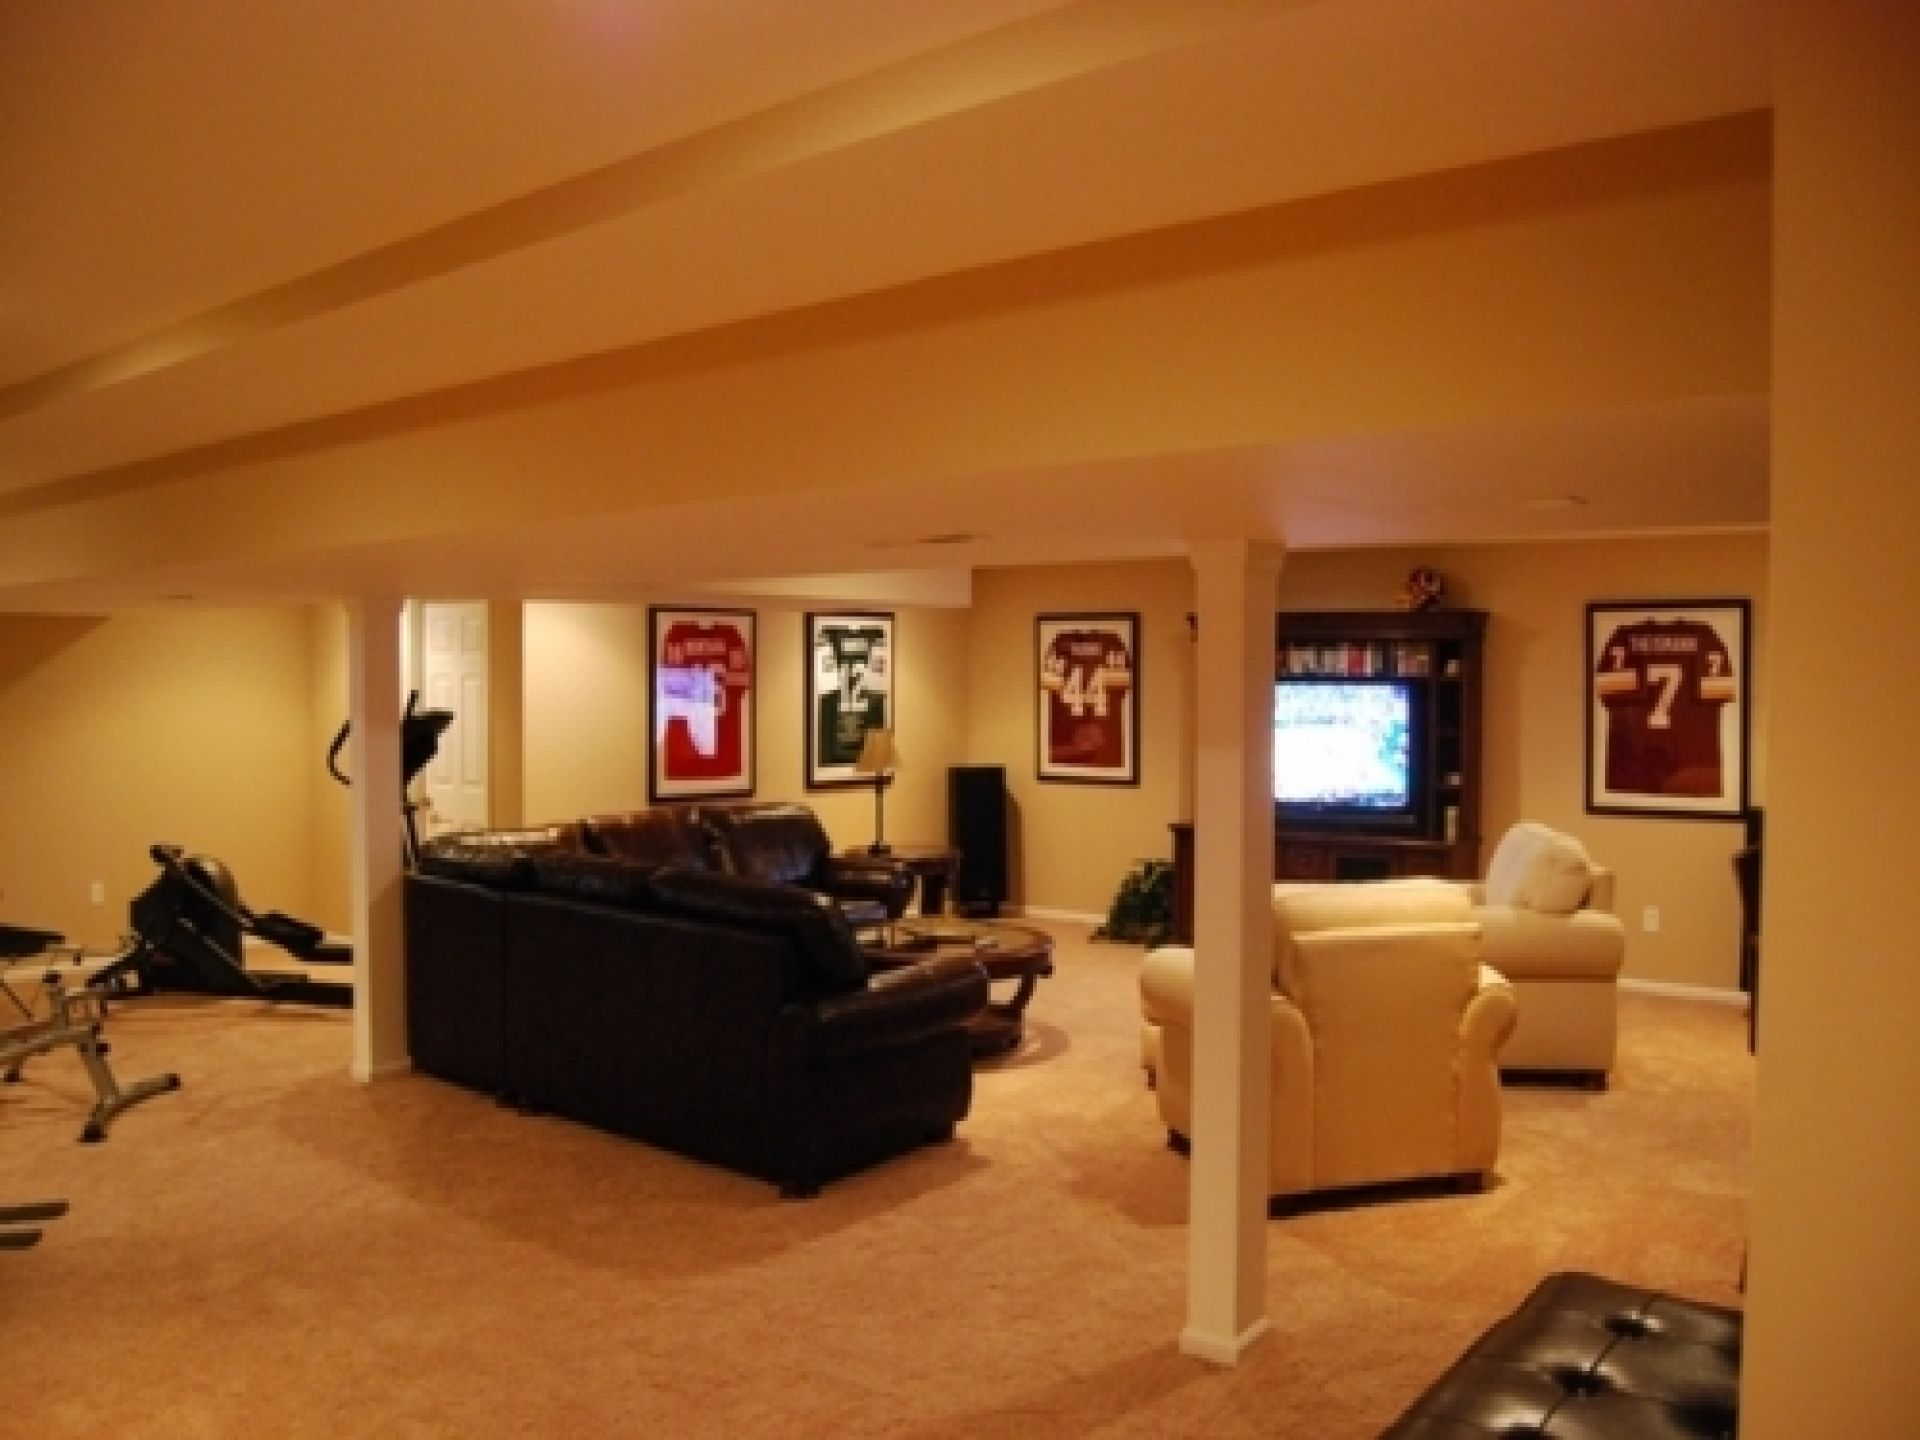 Basement Refinishing Ideas Property basement ideas on a budget | smalltowndjs | morgan home